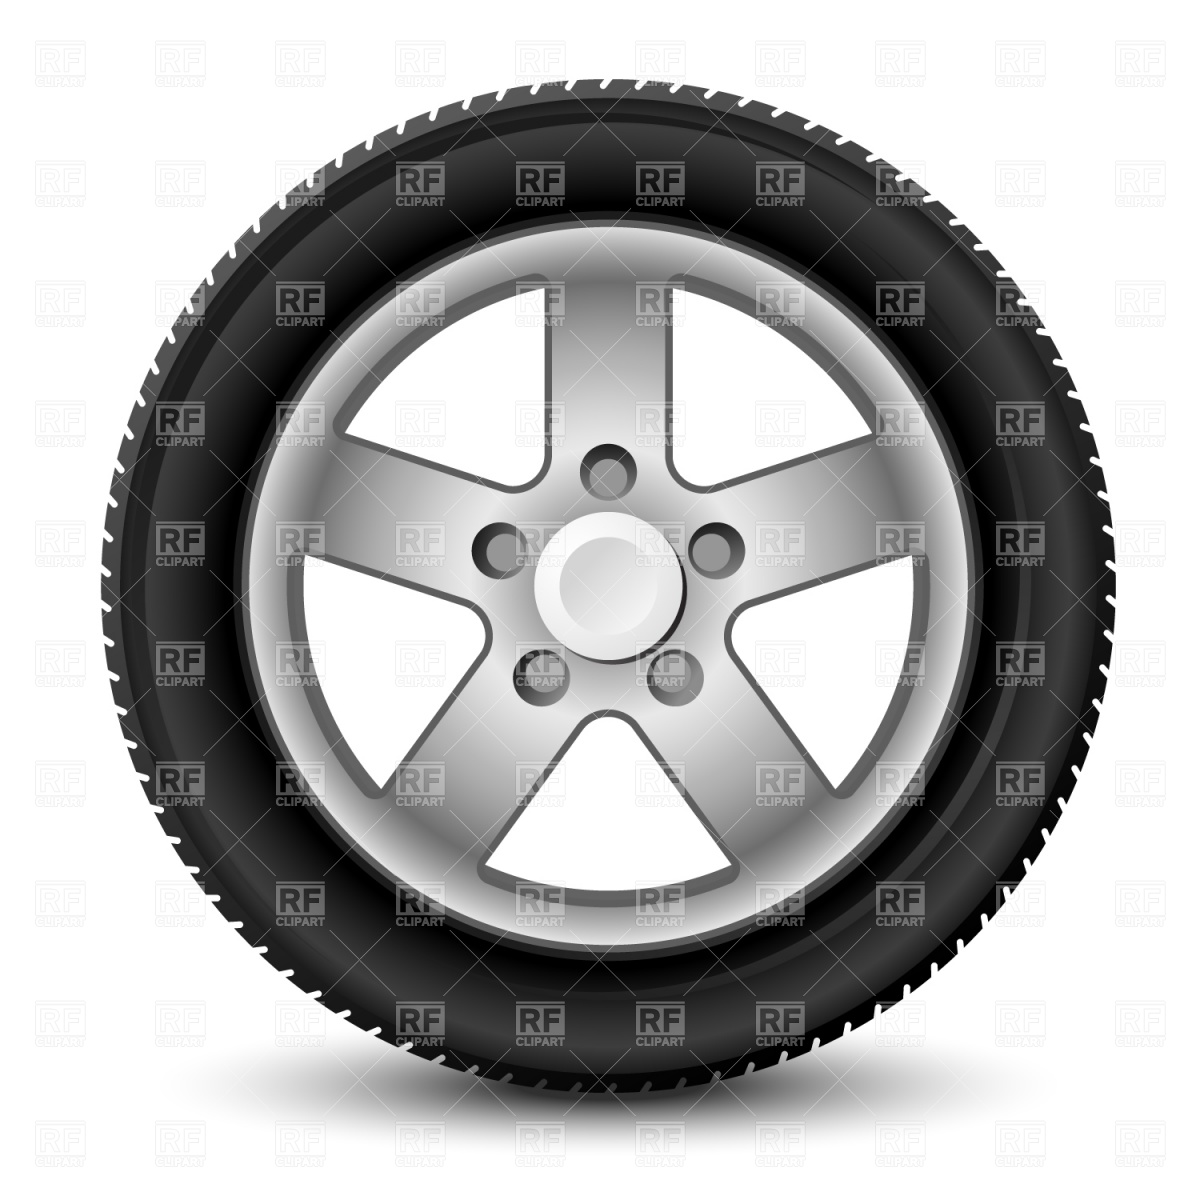 Tire clipart tire change Free Tire Clipart Clipart Wheel